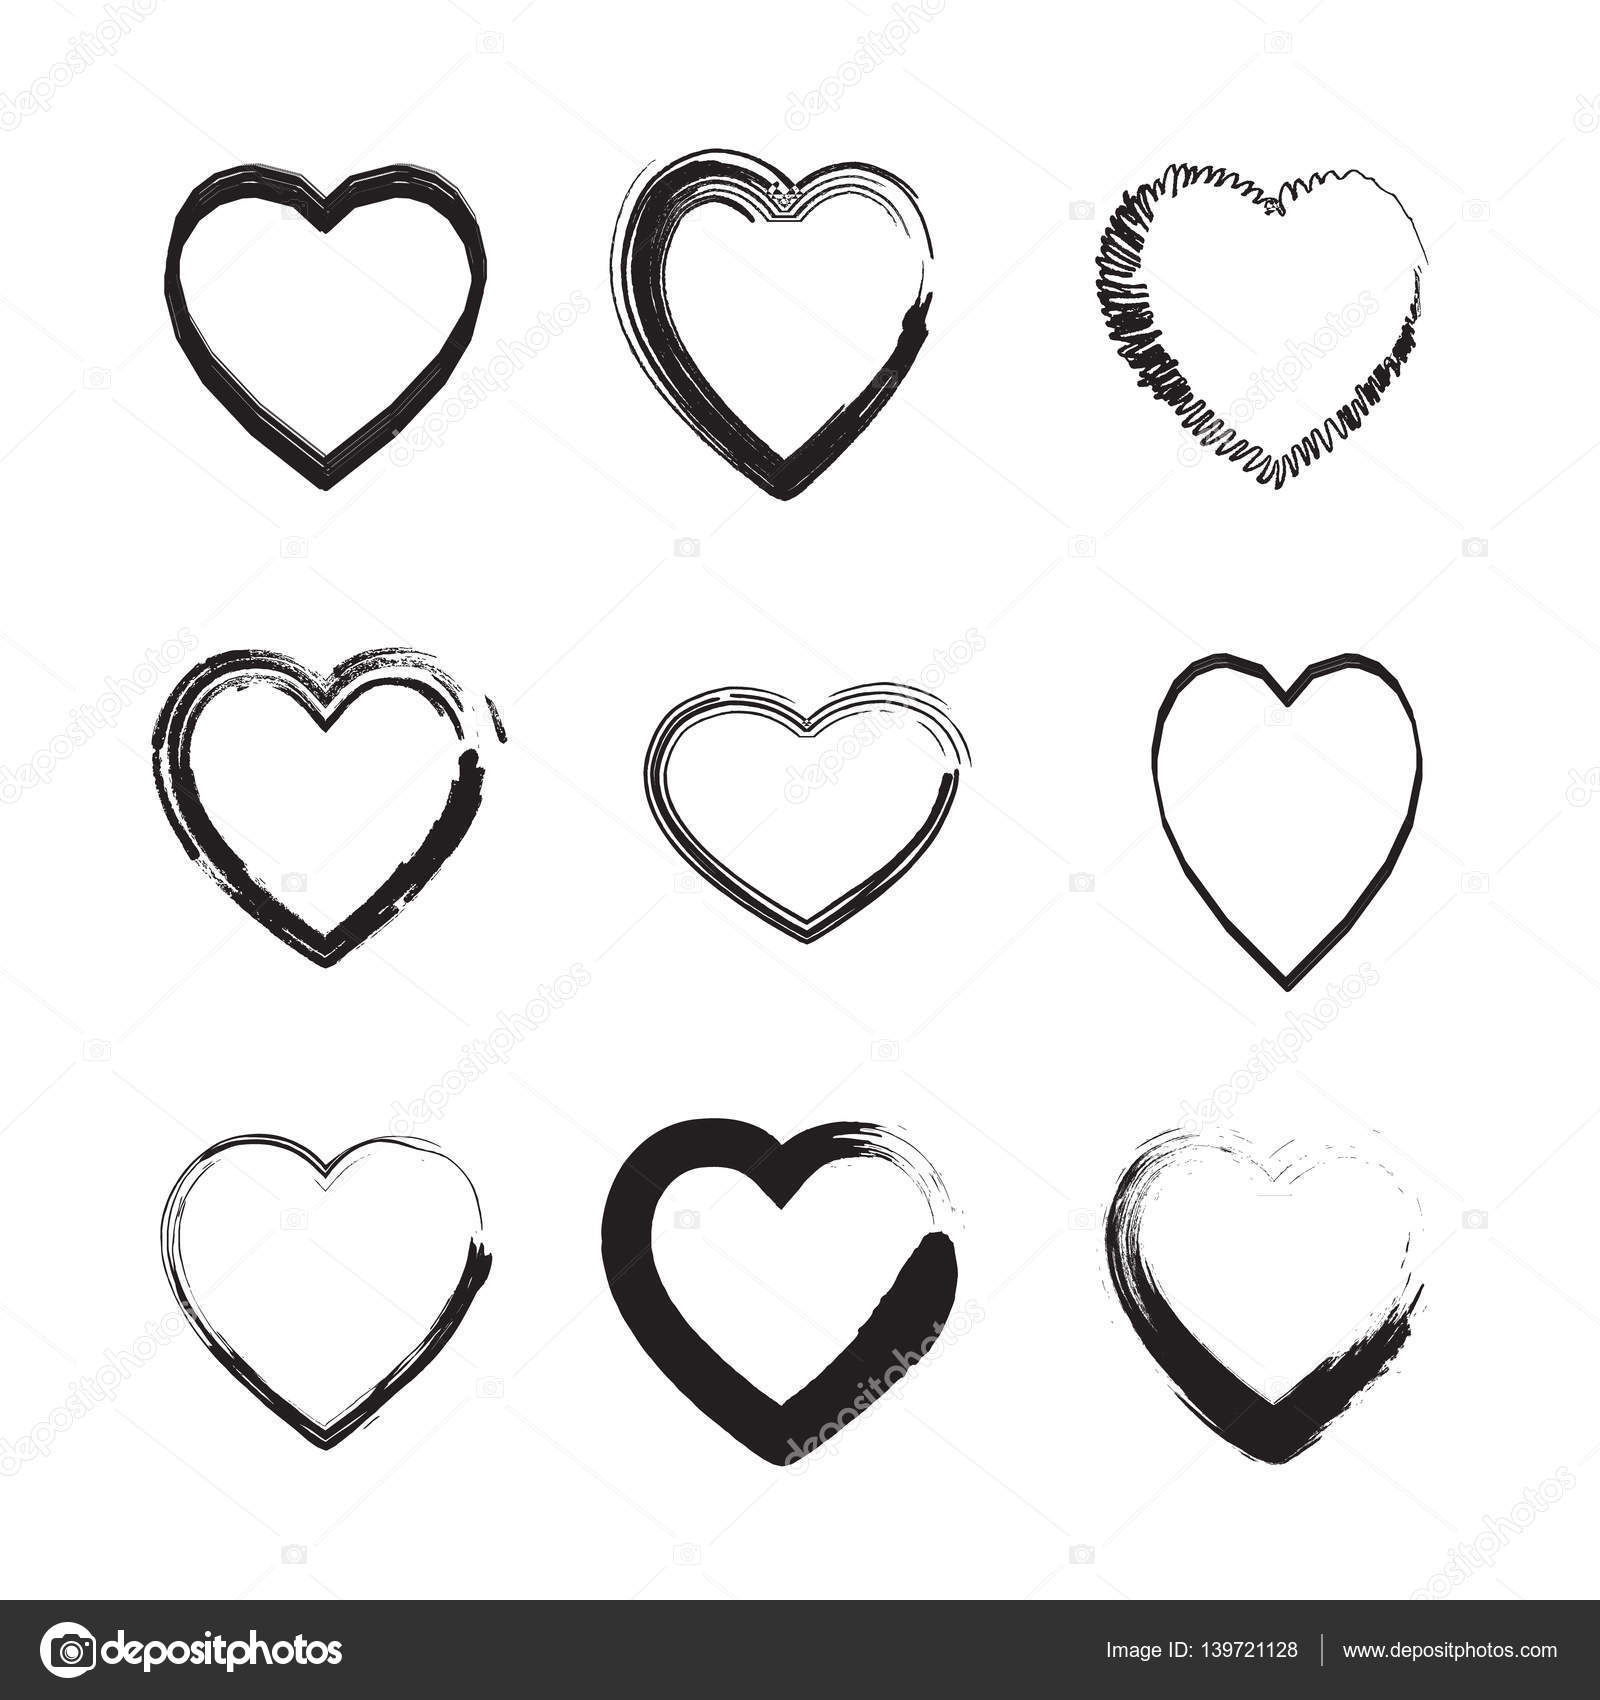 Heart hand drawn set different shapes of hearts isolated on white different shapes of hearts isolated on white love symbols icons labels brush drawing set romantic hearts collection fo holiday trendy design fashion buycottarizona Images